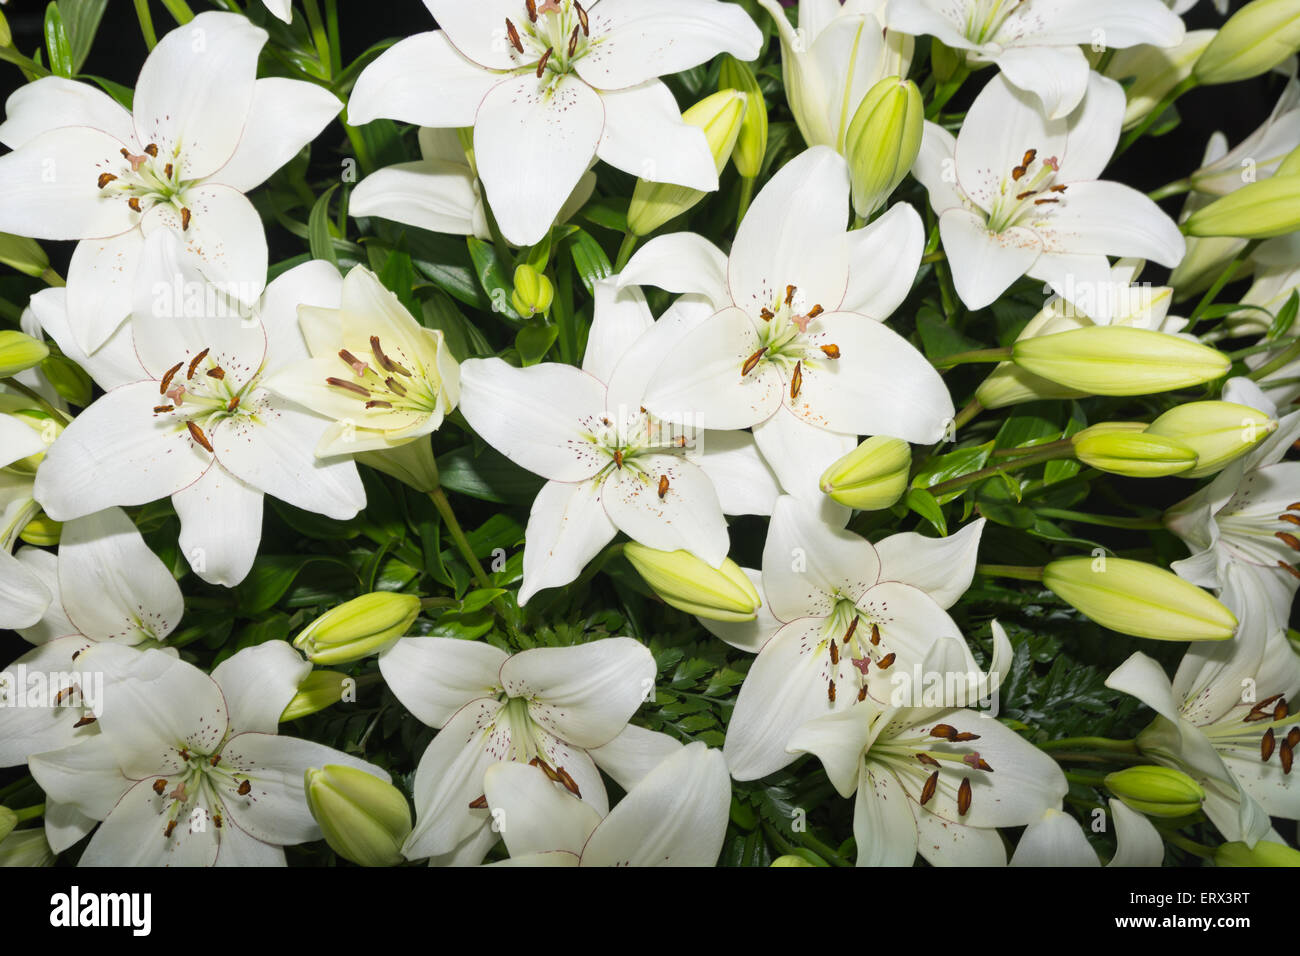 White lilies - Stock Image